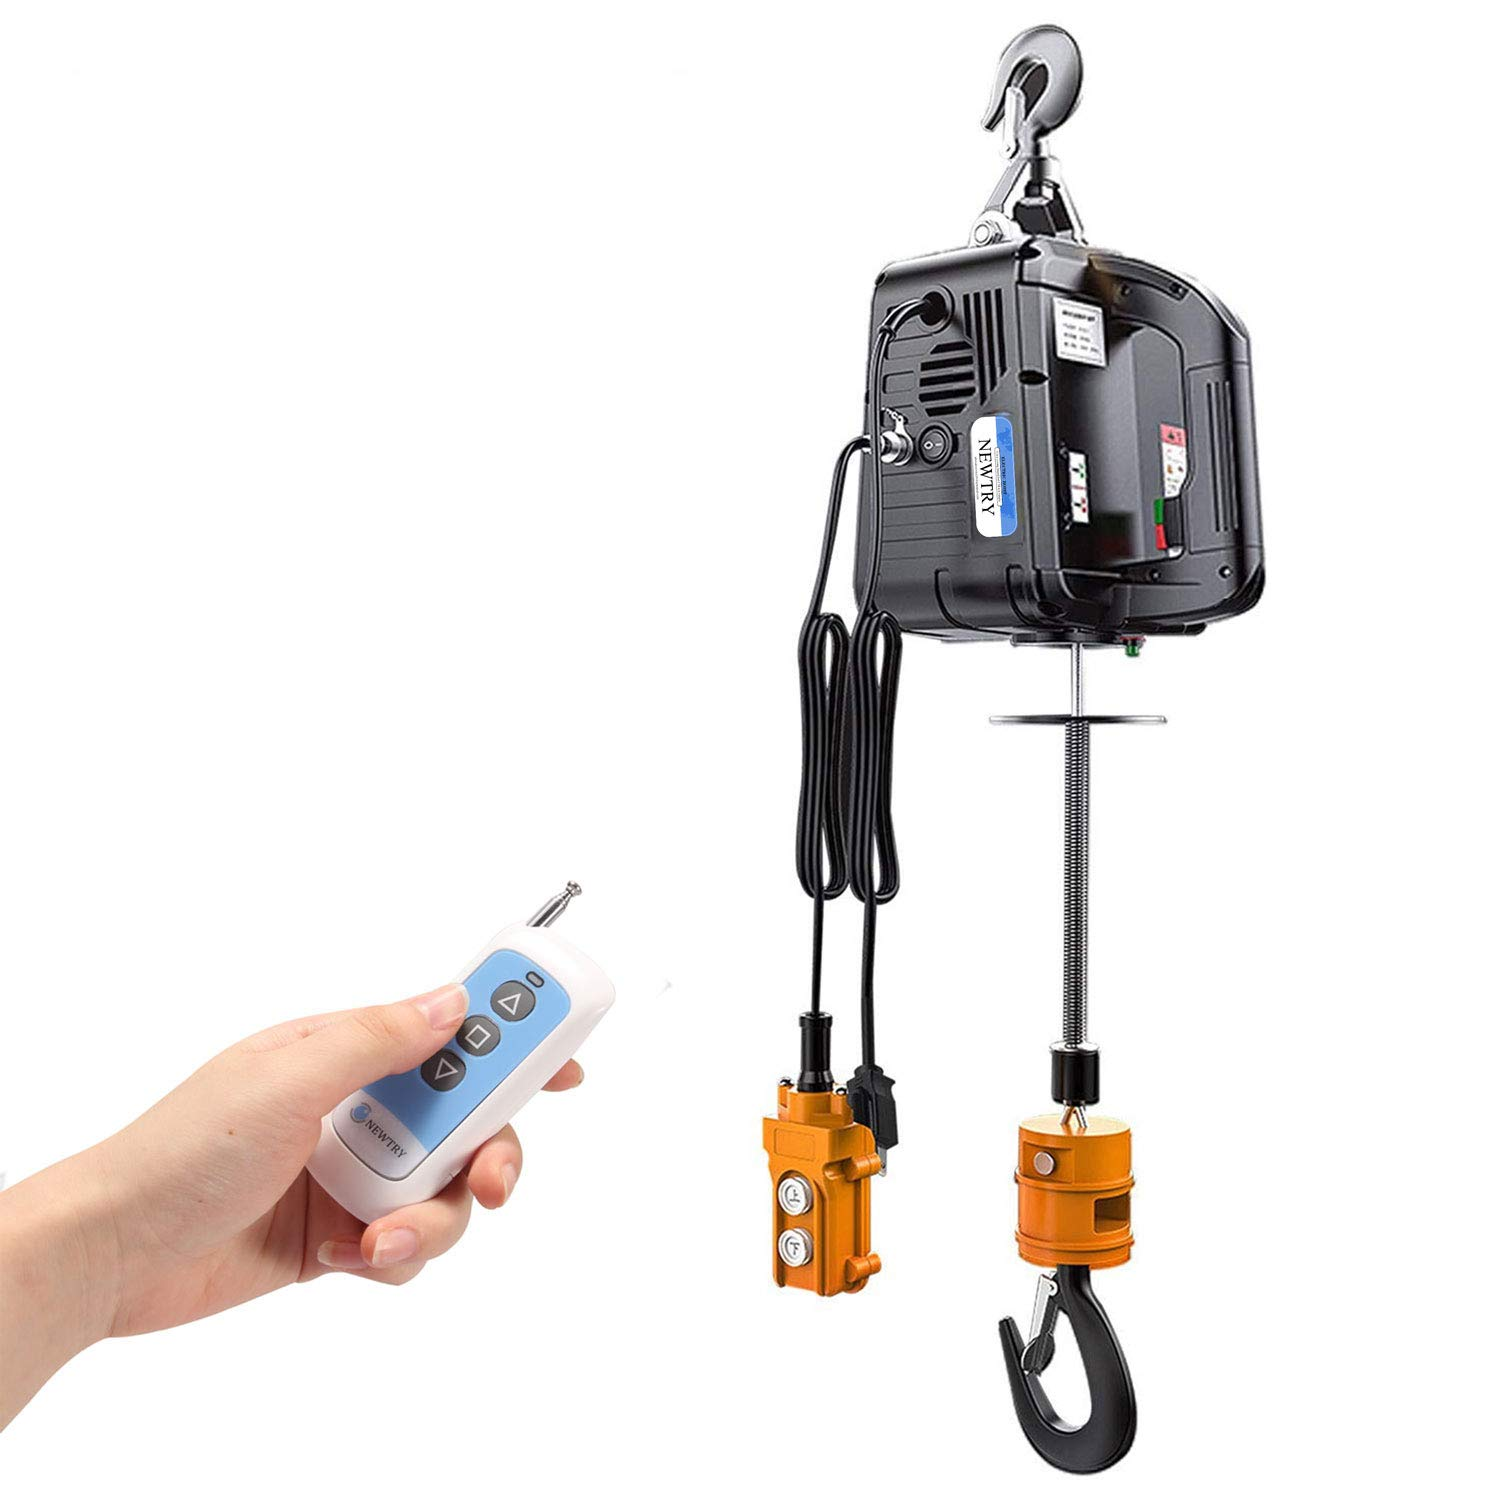 NEWTRY 3 in 1 Electric Hoist Winch 1100lb Wireless Remote Control 7.6m/25ft 110V 1500W Overhead Lift with Overload Protection